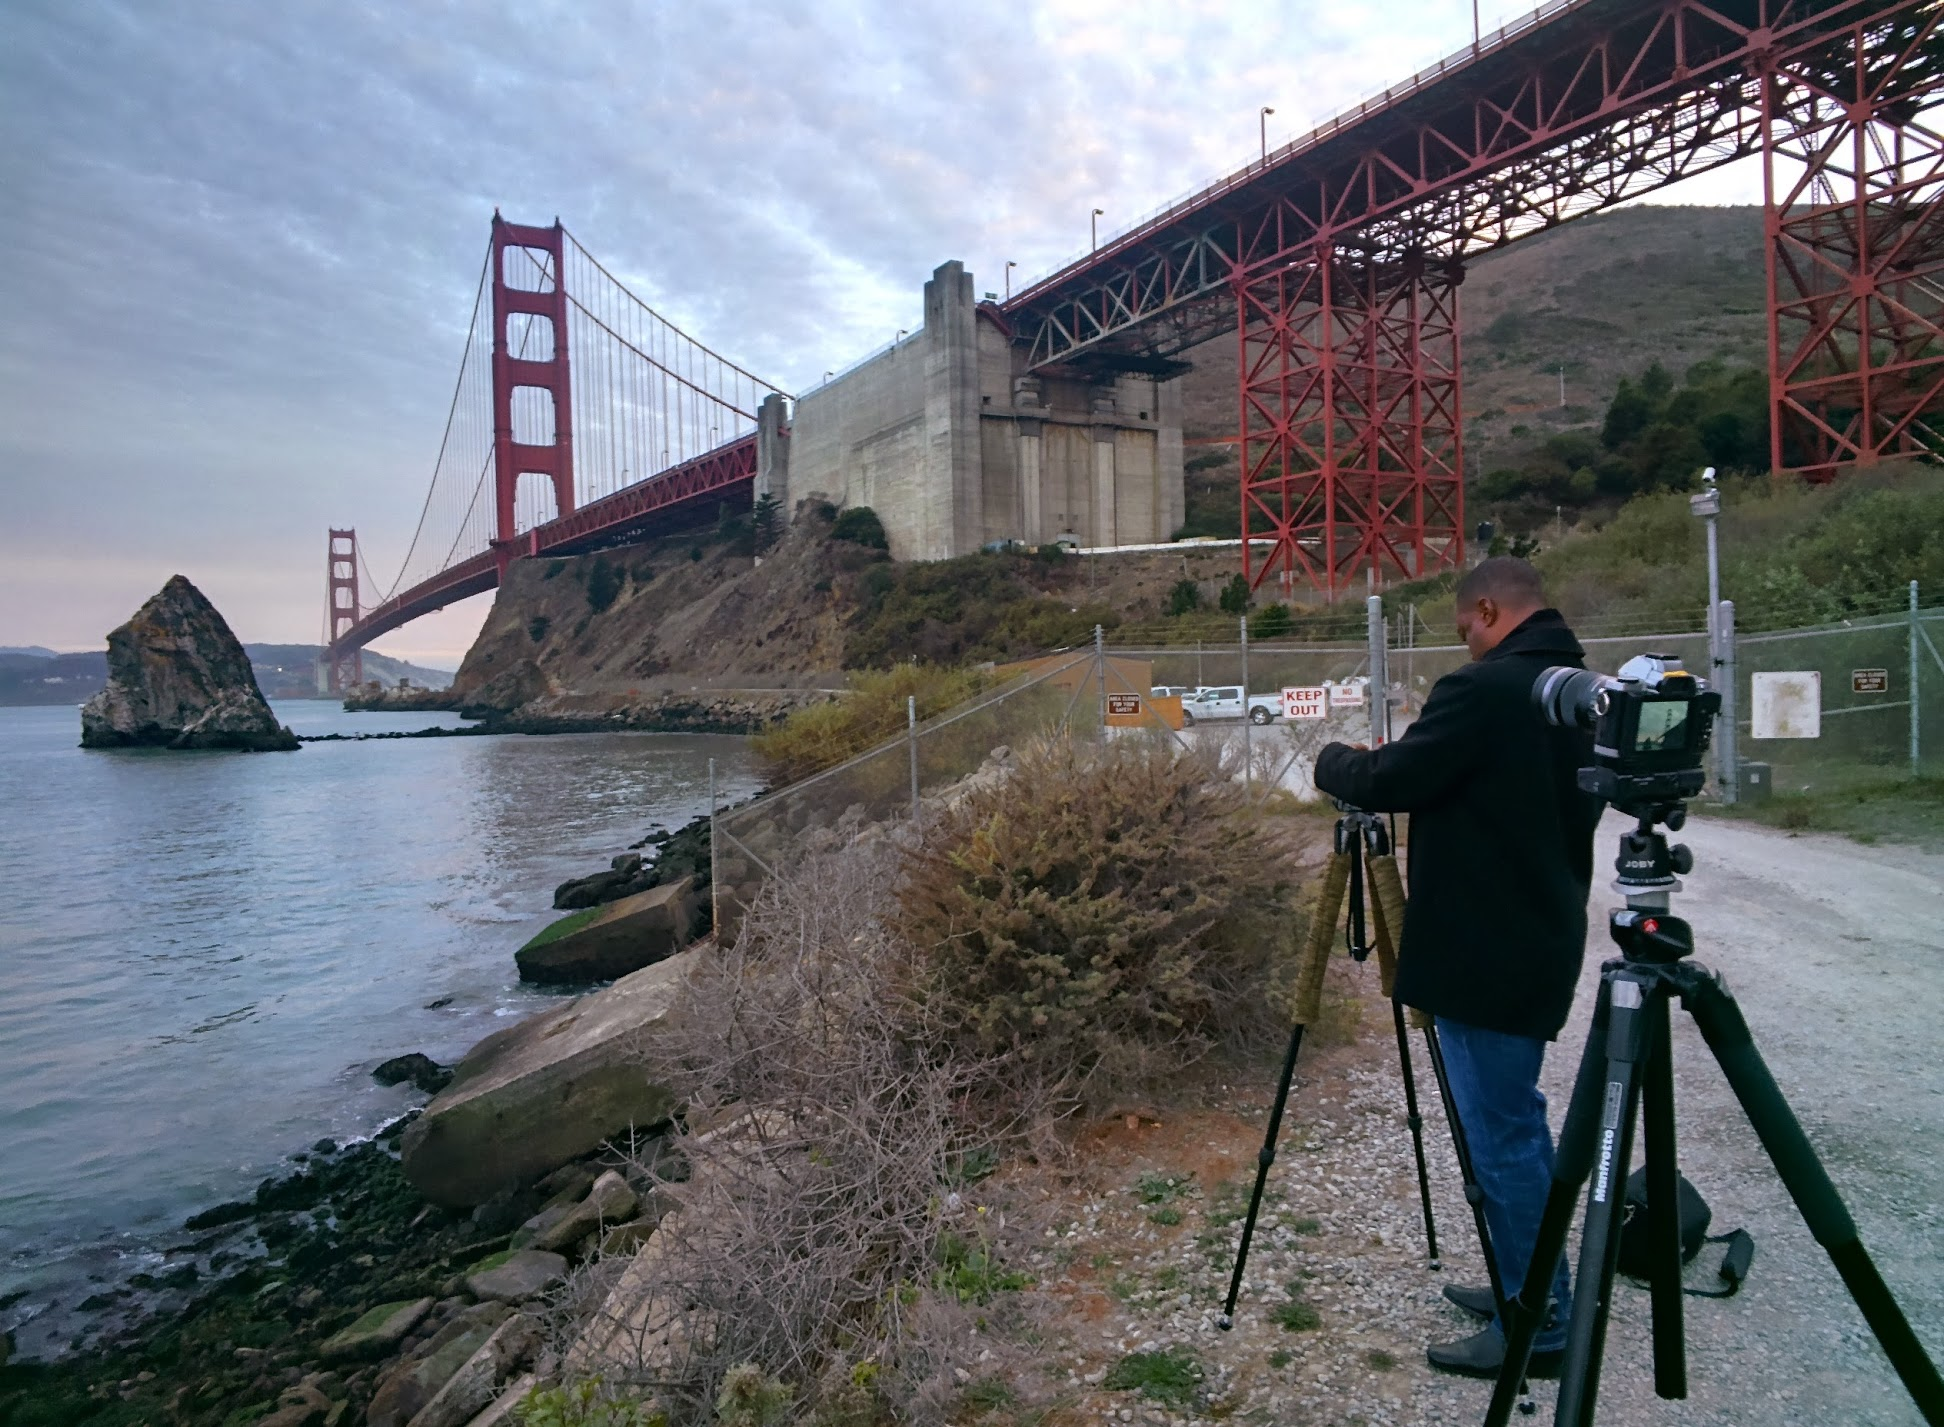 Shooting the Golden Gate Bridge